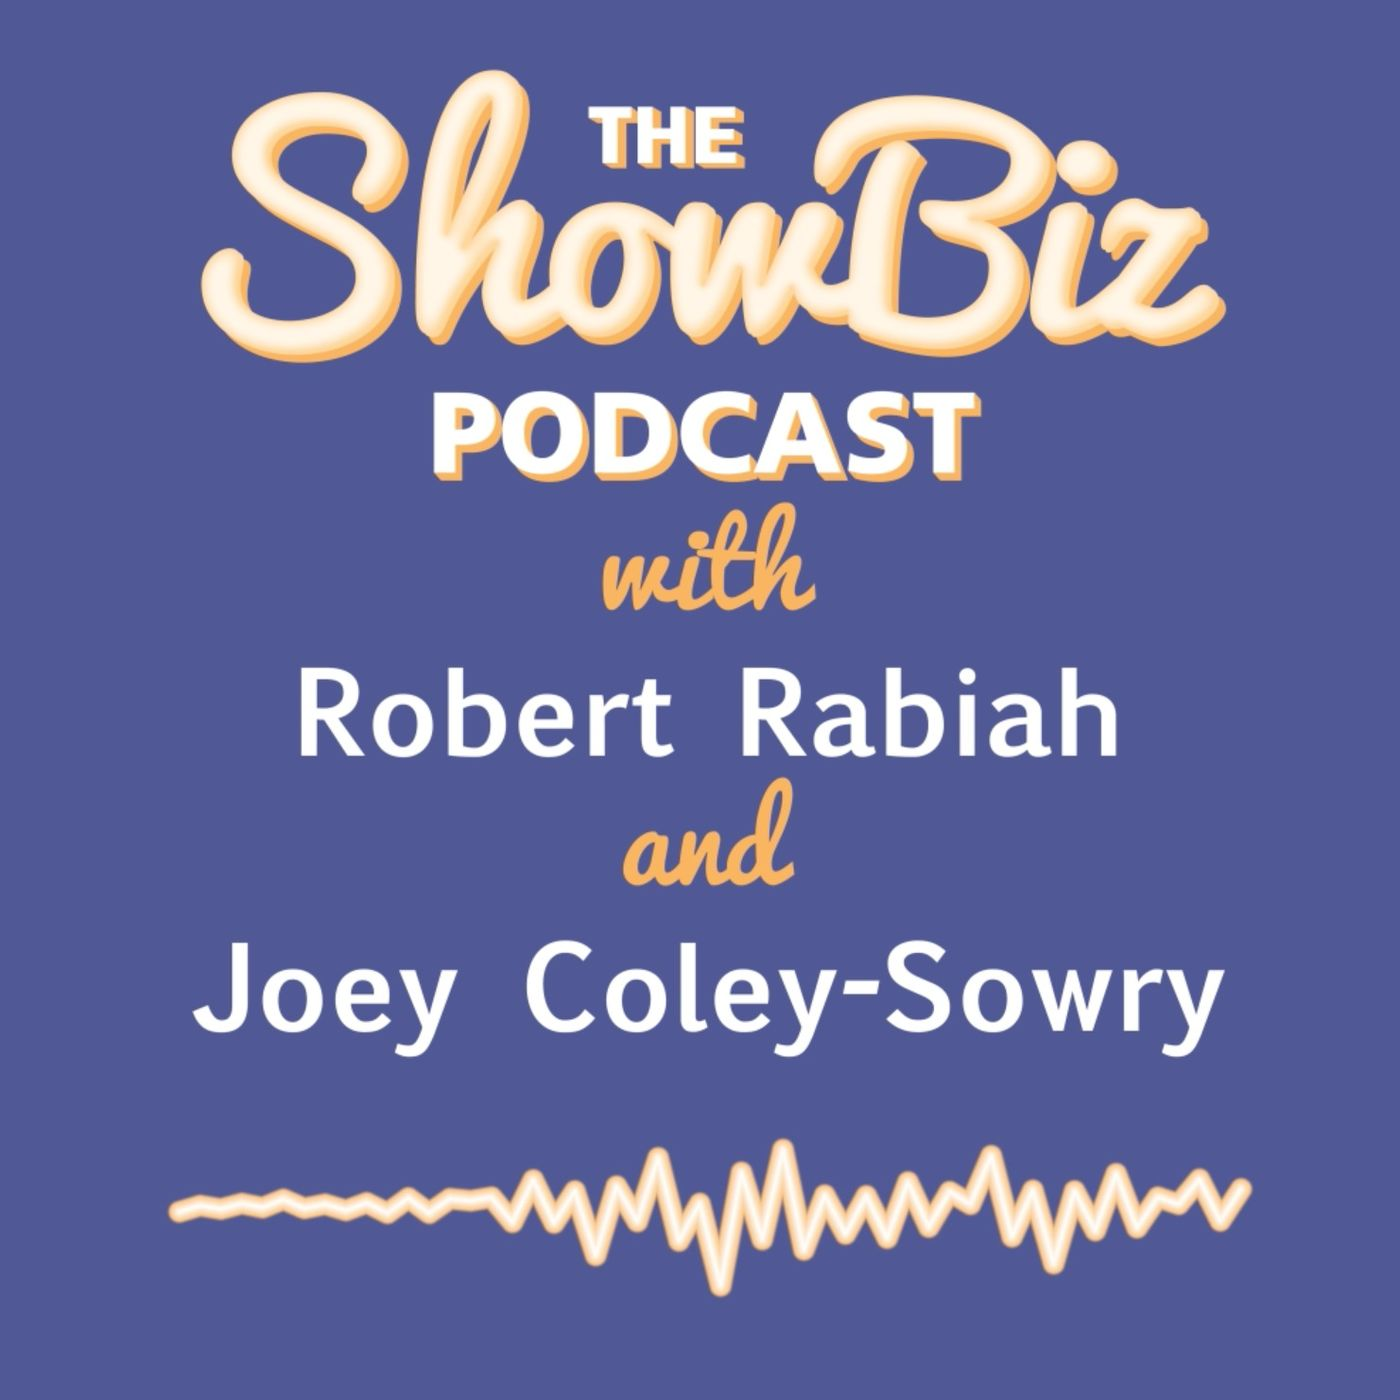 Episode 2 - Nicole Chamoun - The ShowBiz Podcast with Robert Rabiah and Joey Coley-Sowry